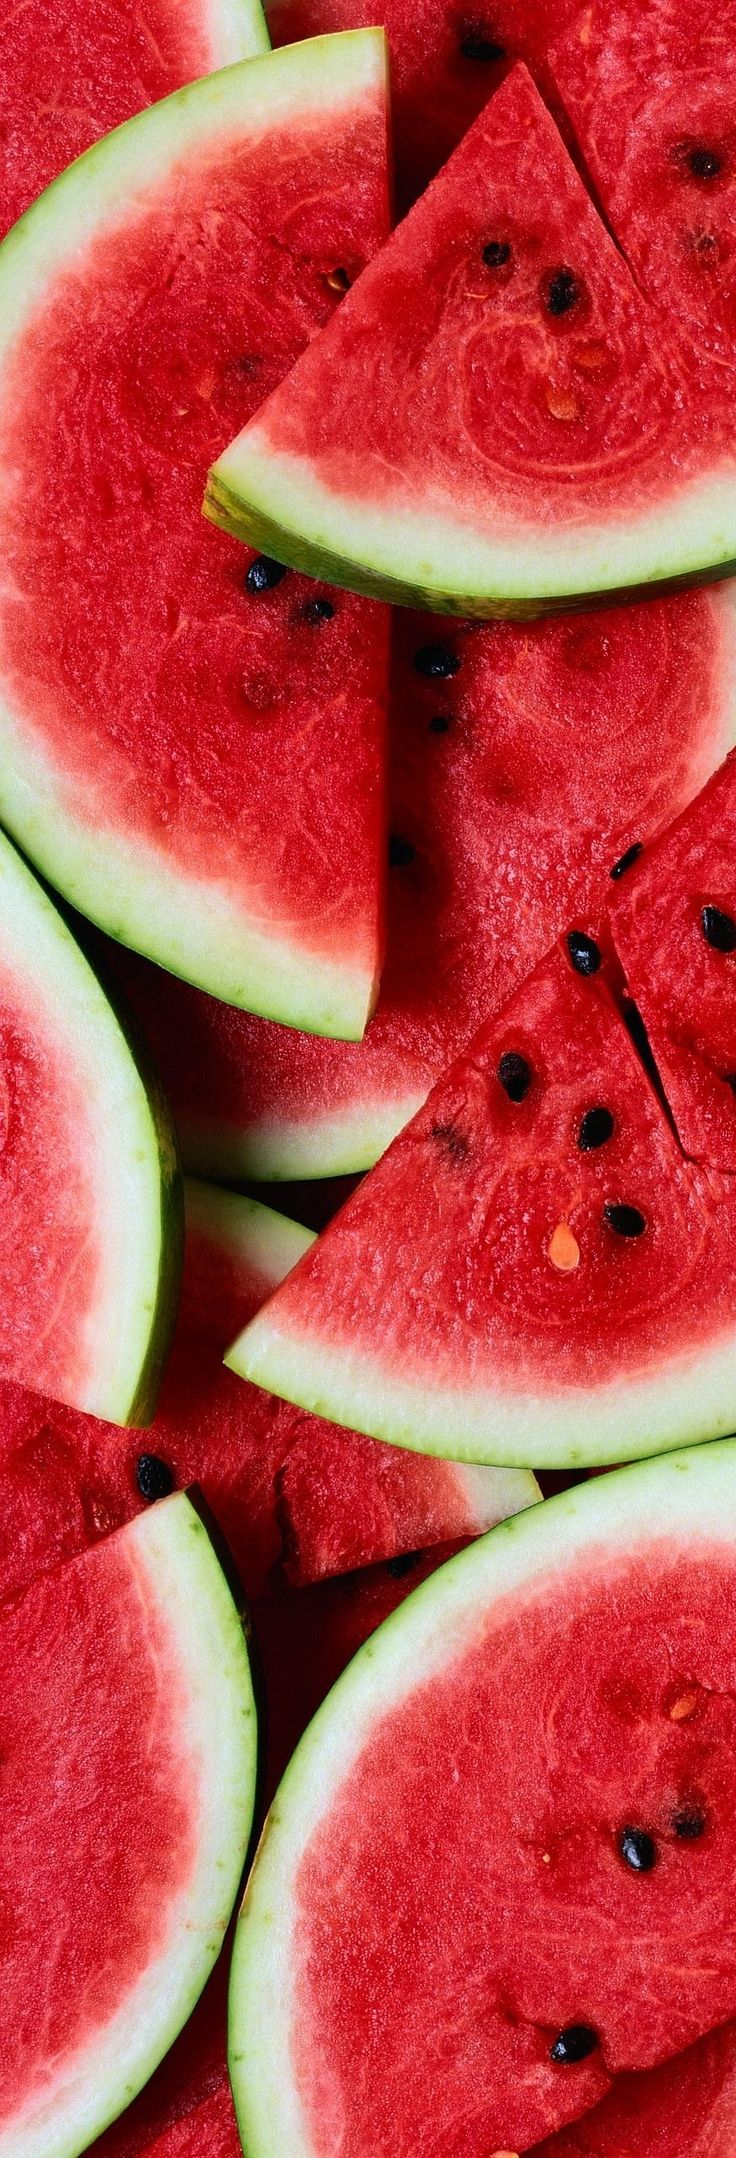 Watermelons is not only everyone's favorite summer fruit, it's also a beauty must! Low in calories and high in vitamins A and C, watermelon is said to help hydrate skin and fight free radicals with its large amount of lycopene (a potent antioxidant). #angiosperms